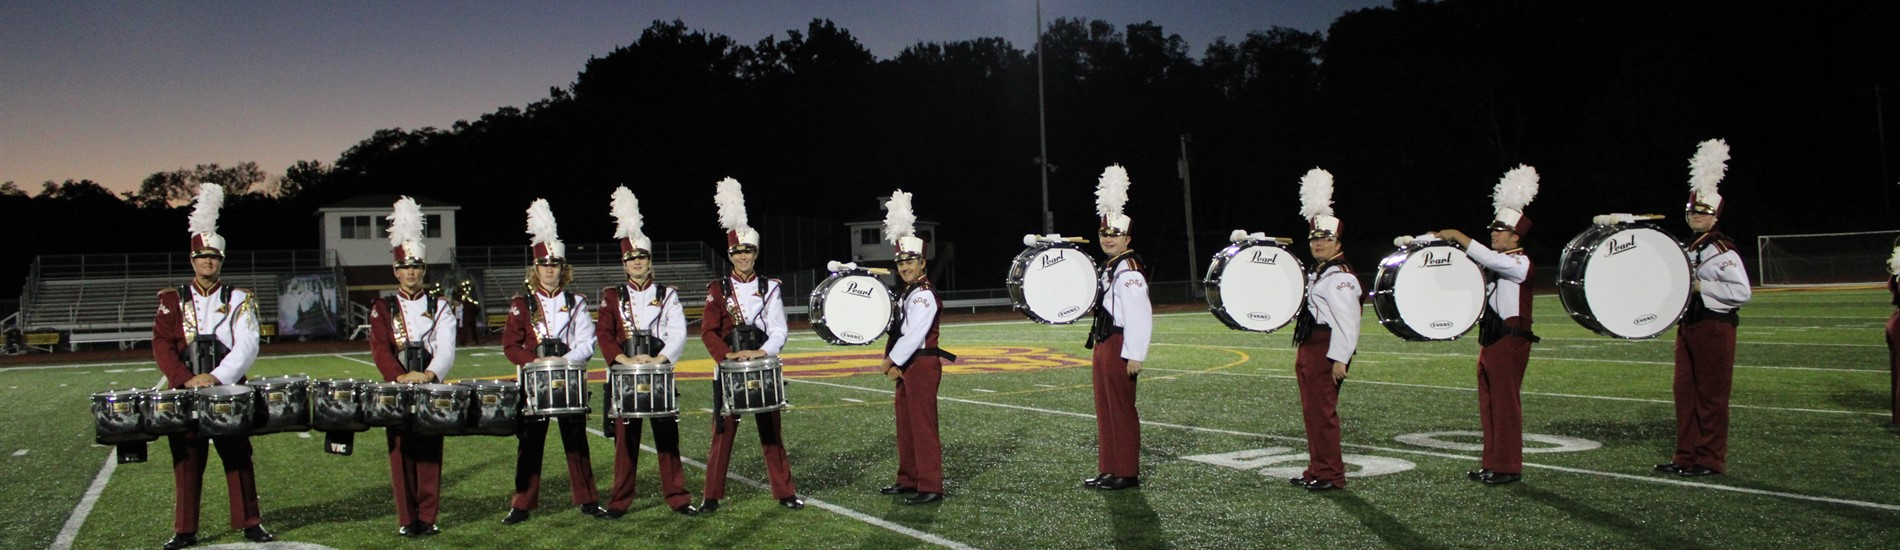 Ross HIgh School Marching Band Drum Line.